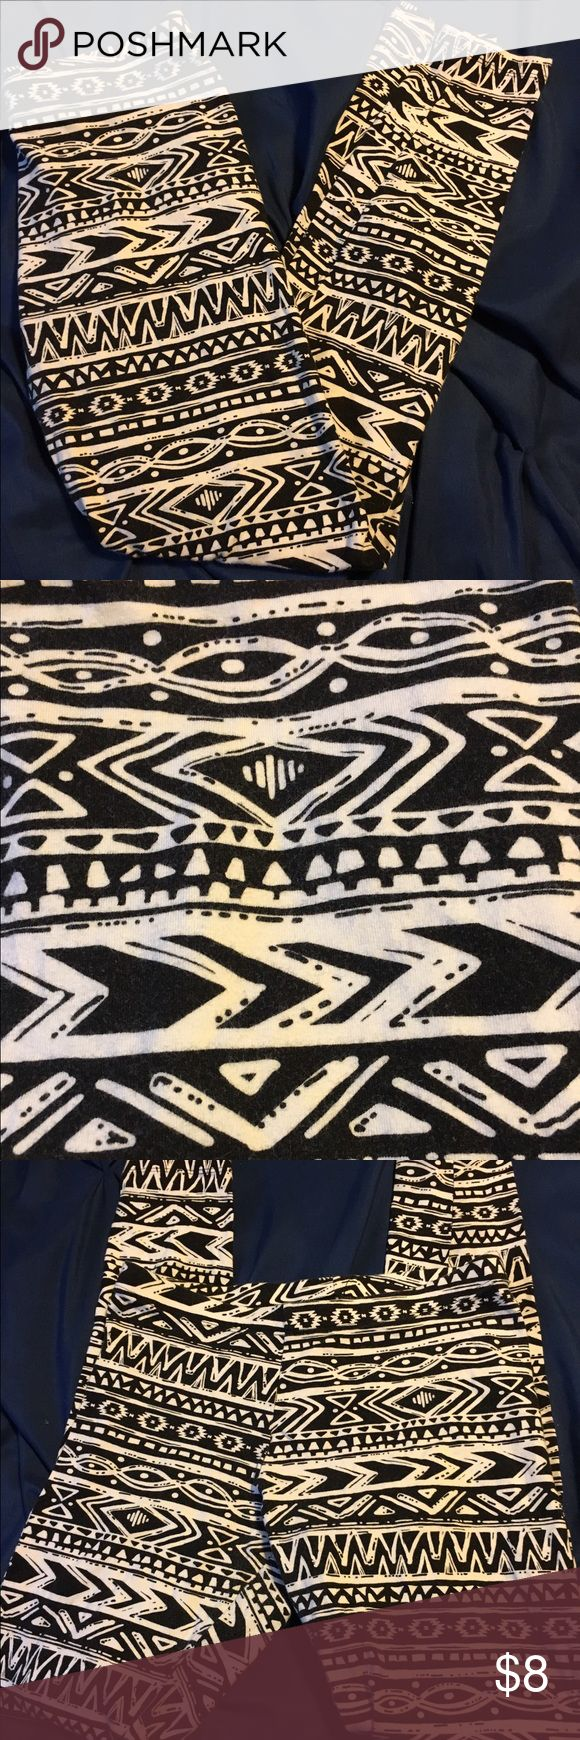 Charlotte Russe black and white tribal leggings Black and white tribal print leggings from Charlotte Russe..size large Charlotte Russe Pants Leggings